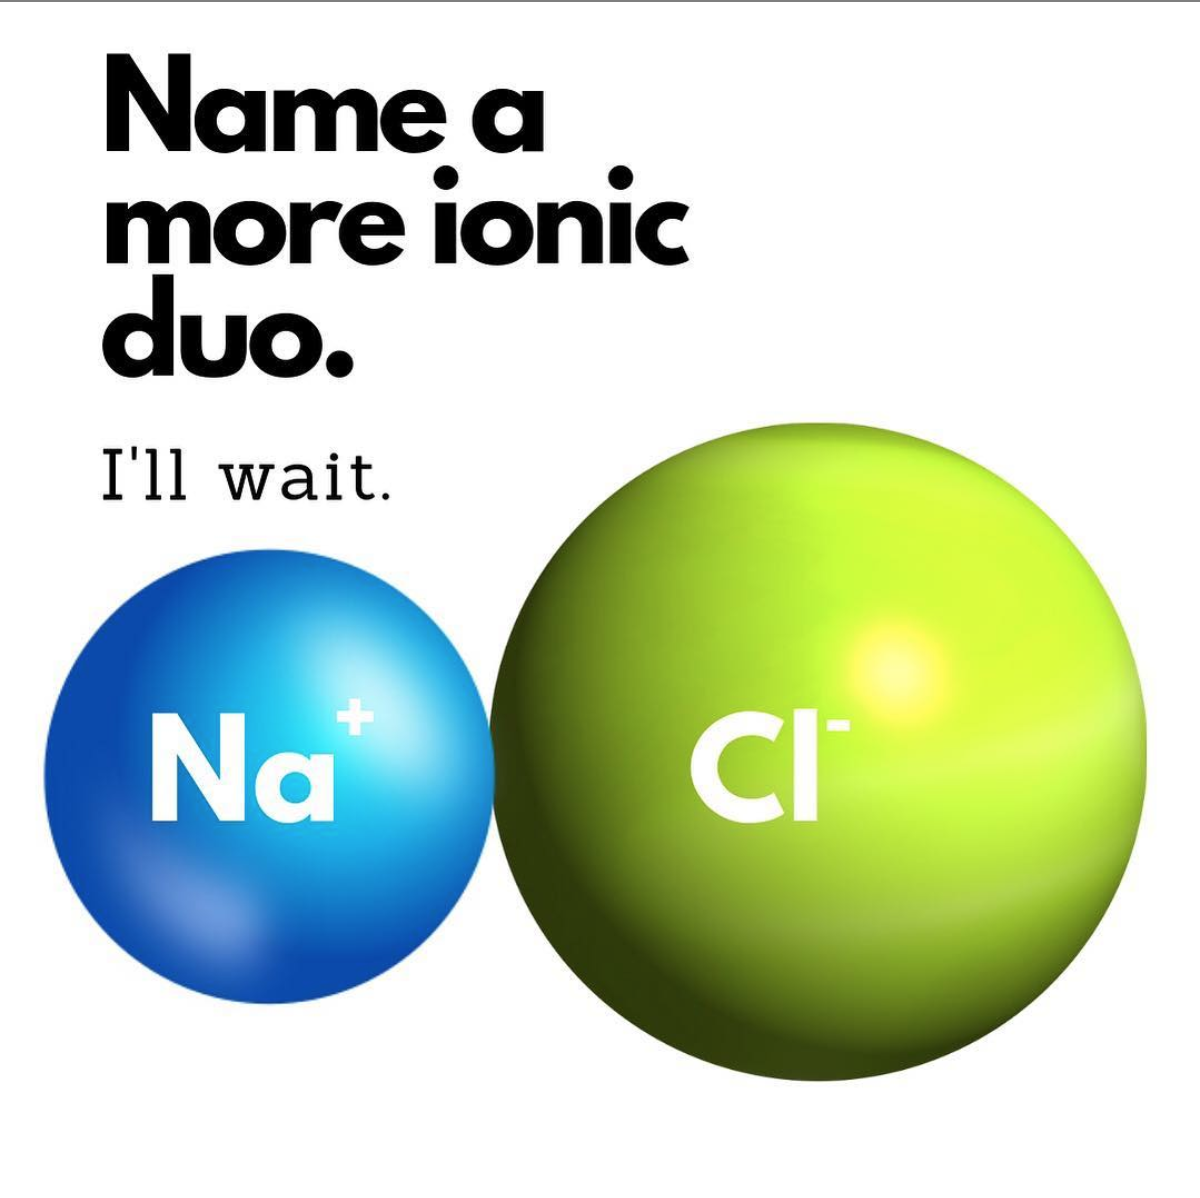 Name a more ionic due. I'll wait.